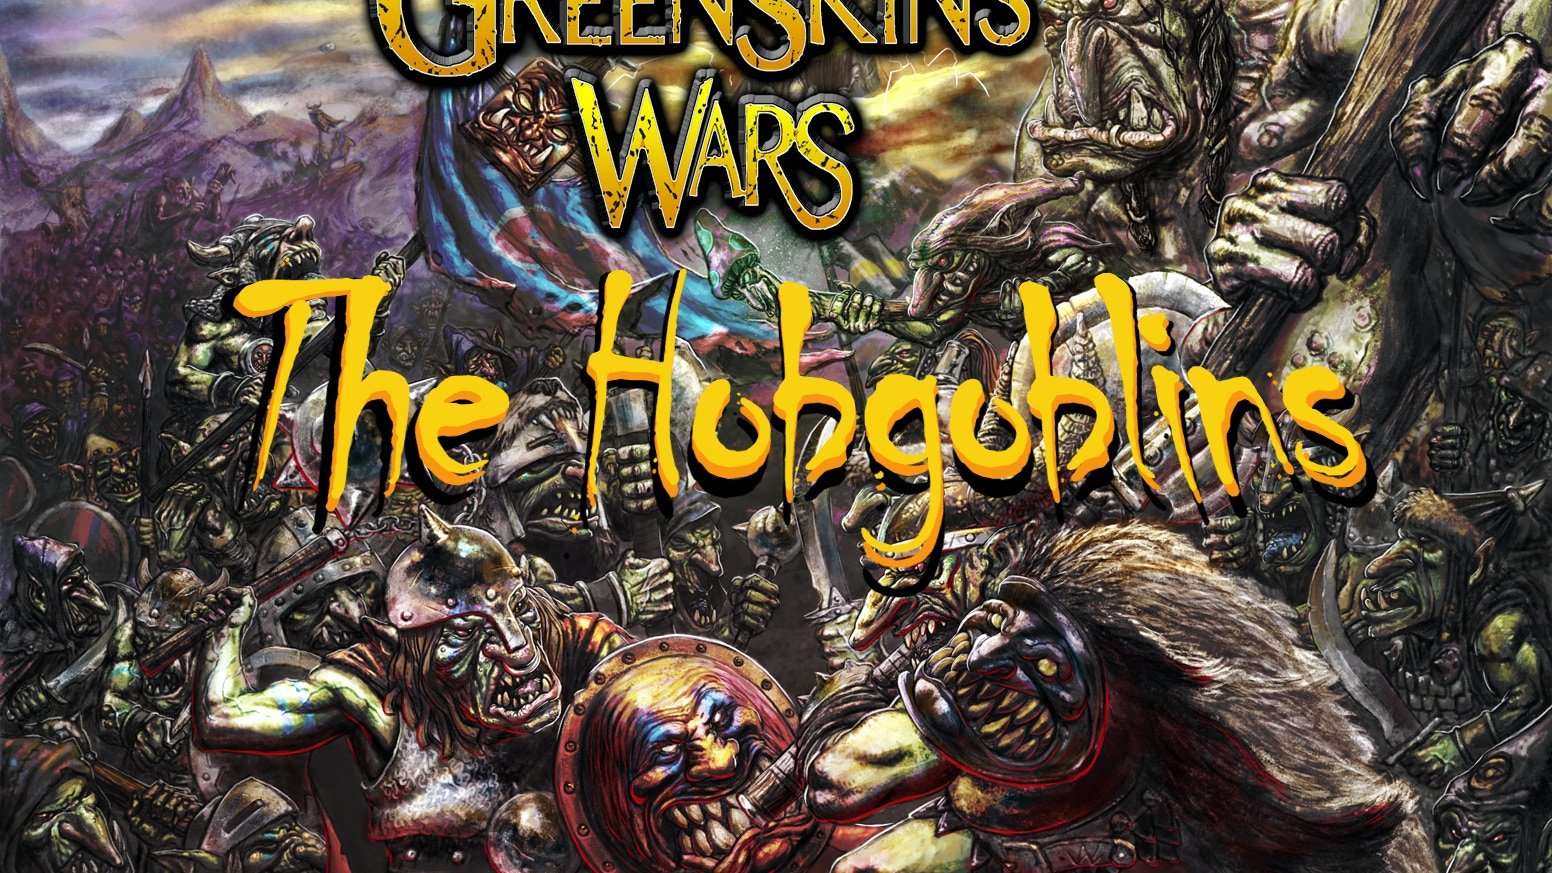 This campaign's goal is to fund the new Hobgoblins race to be added to the Greenskin Wars universe. All models sculpted by Kev Adams!